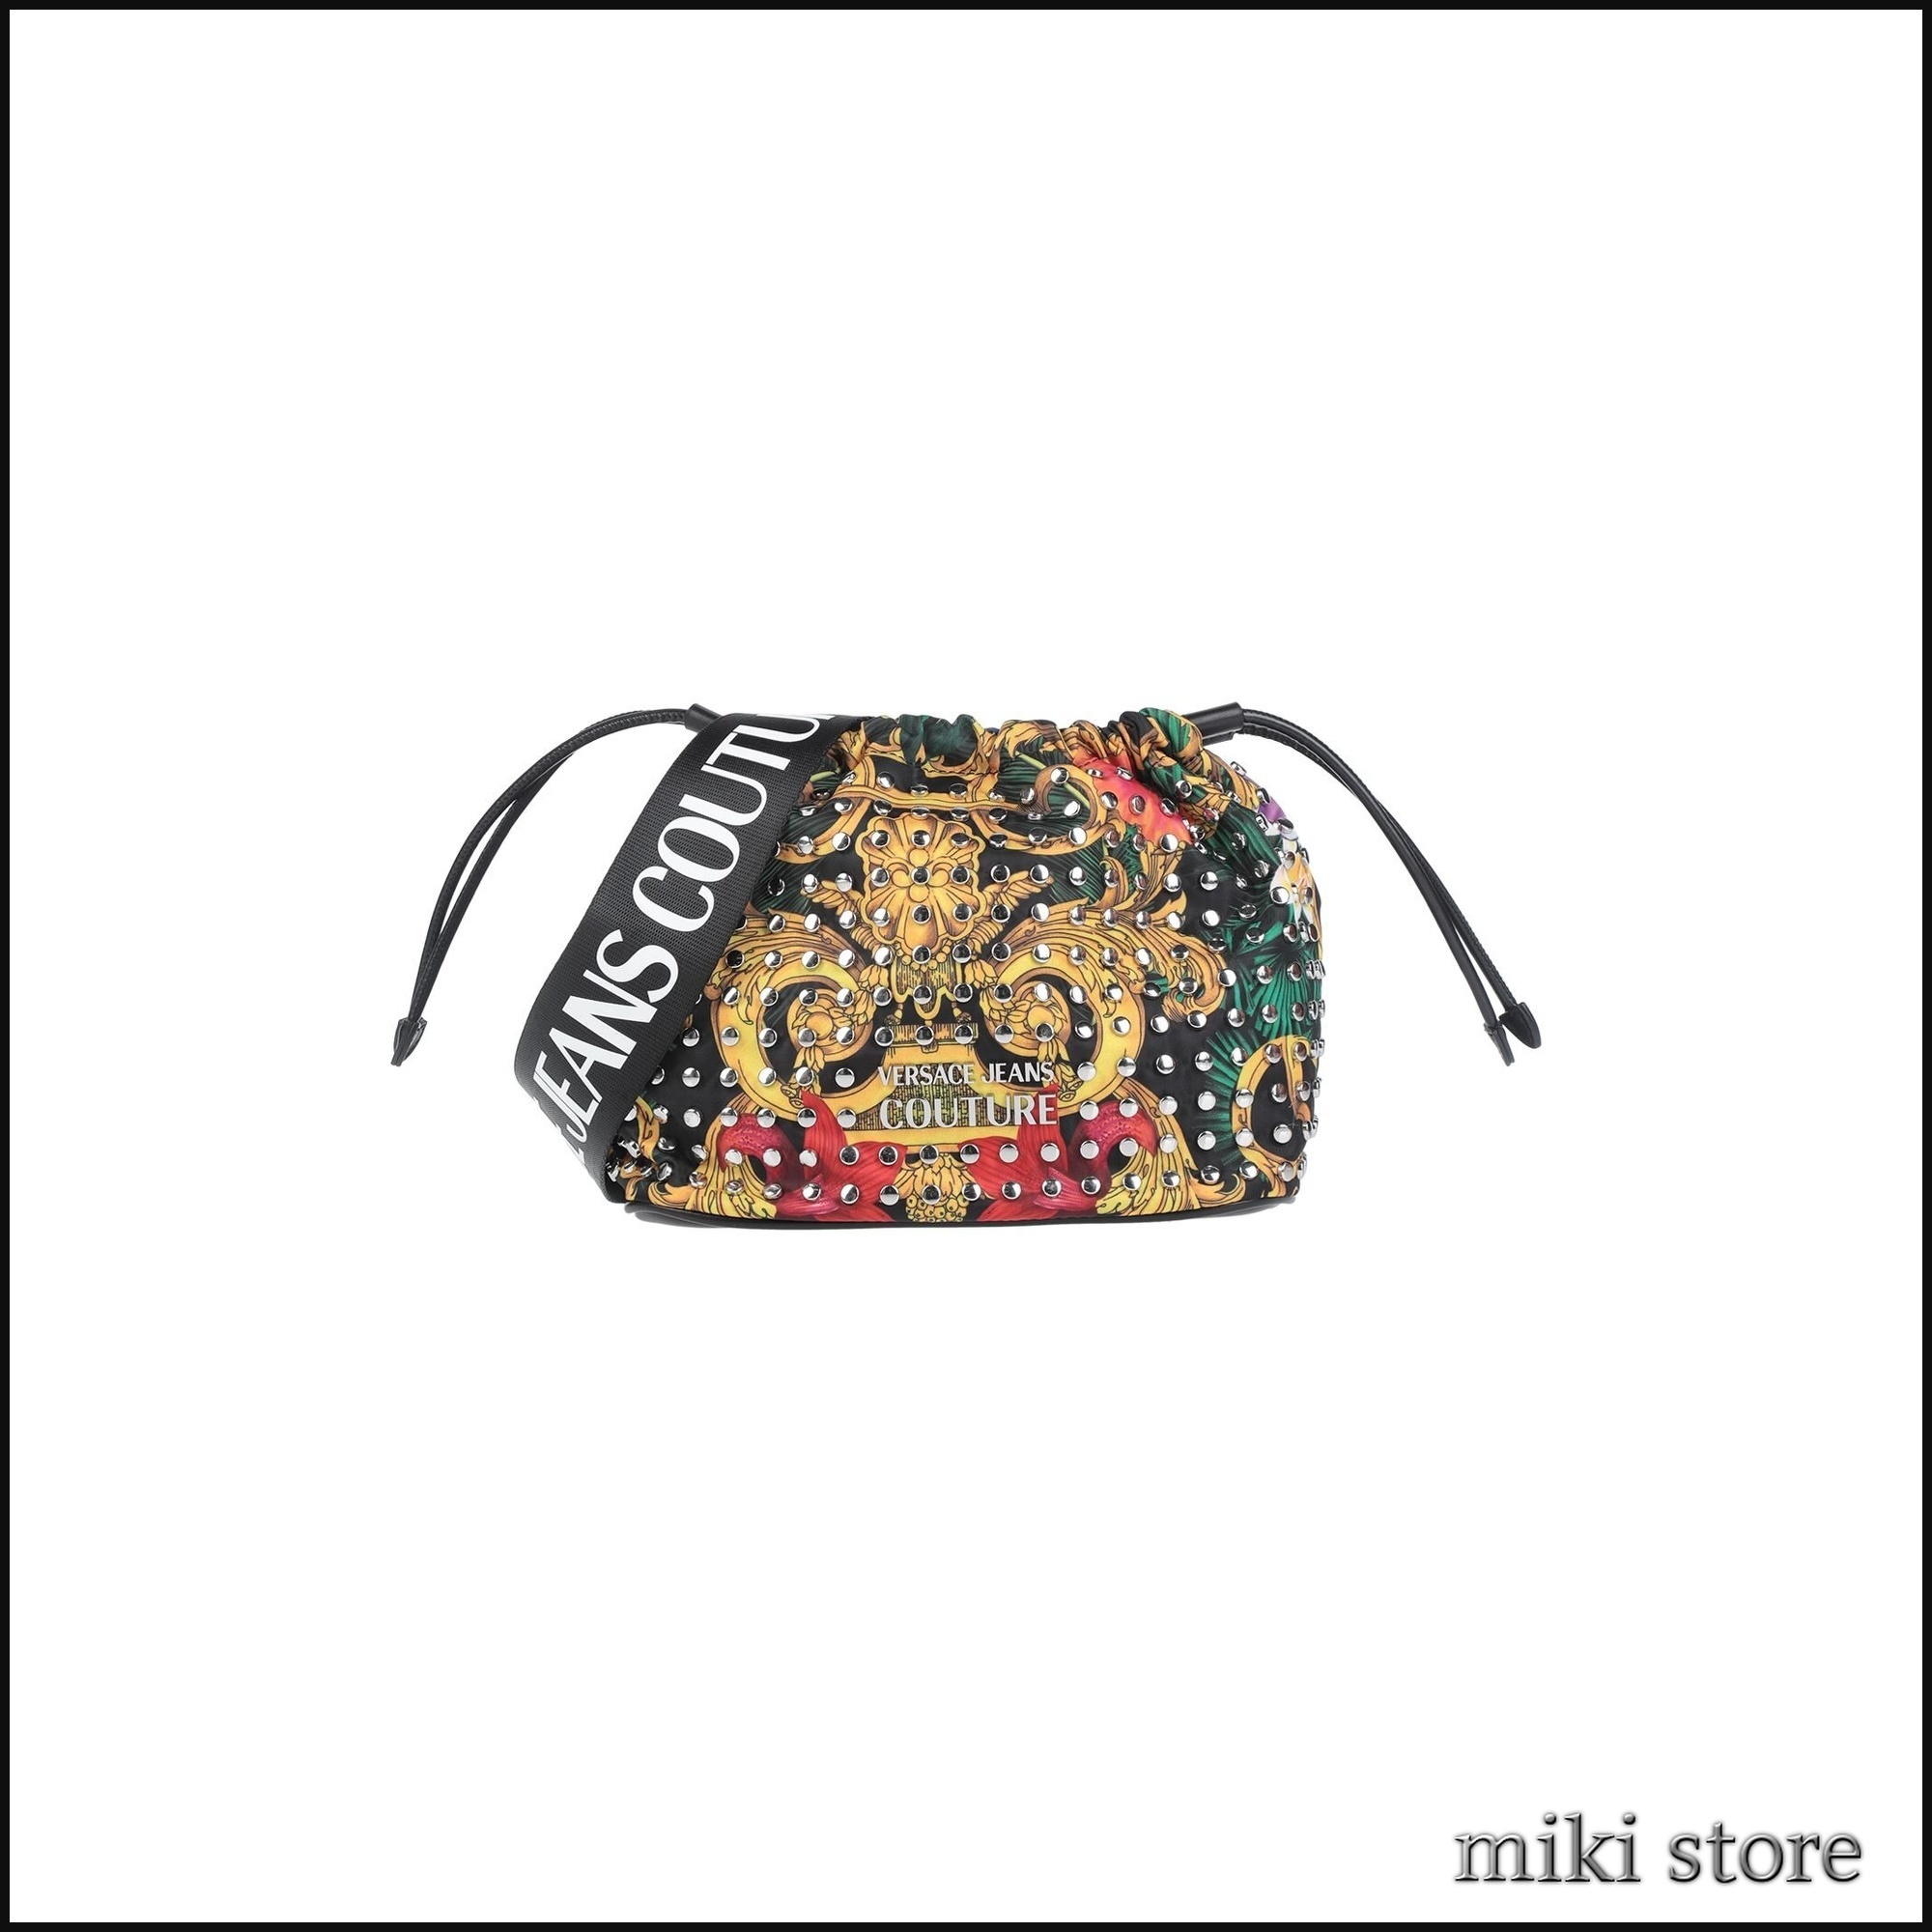 【VERSACE JEANS COUTURE】ショルダーバッグ (VERSACE/ショルダーバッグ) 455588